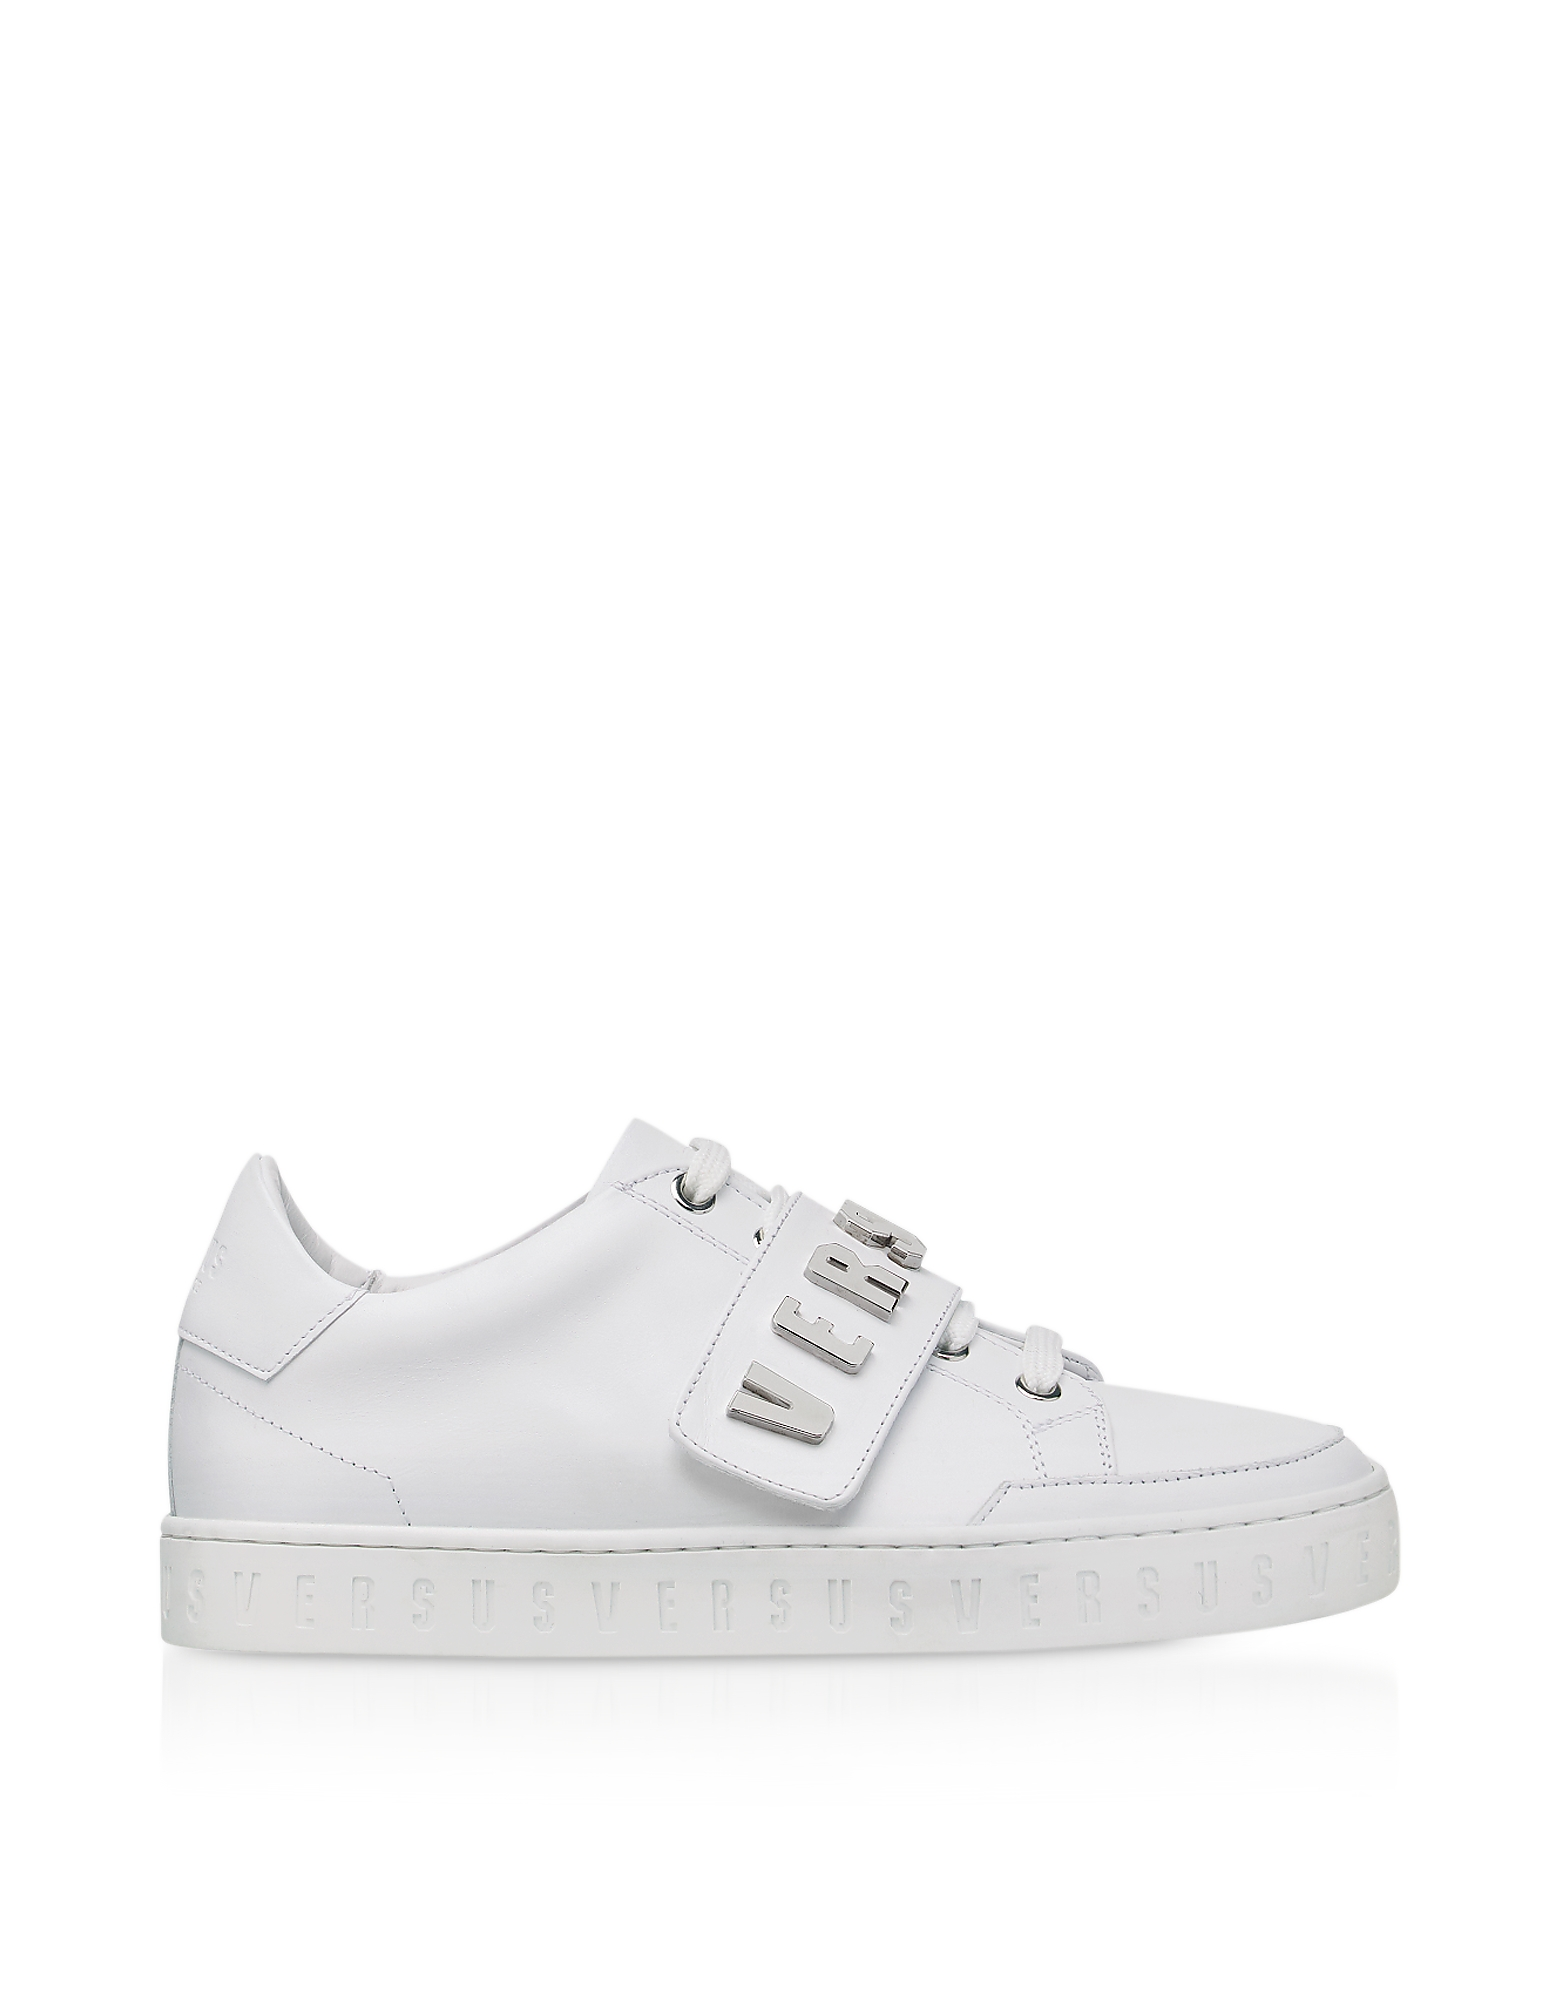 Image of Versace Versus Designer Shoes, Optic White Leather Low Top Trainers w/Silvertone Metal Signature Logo